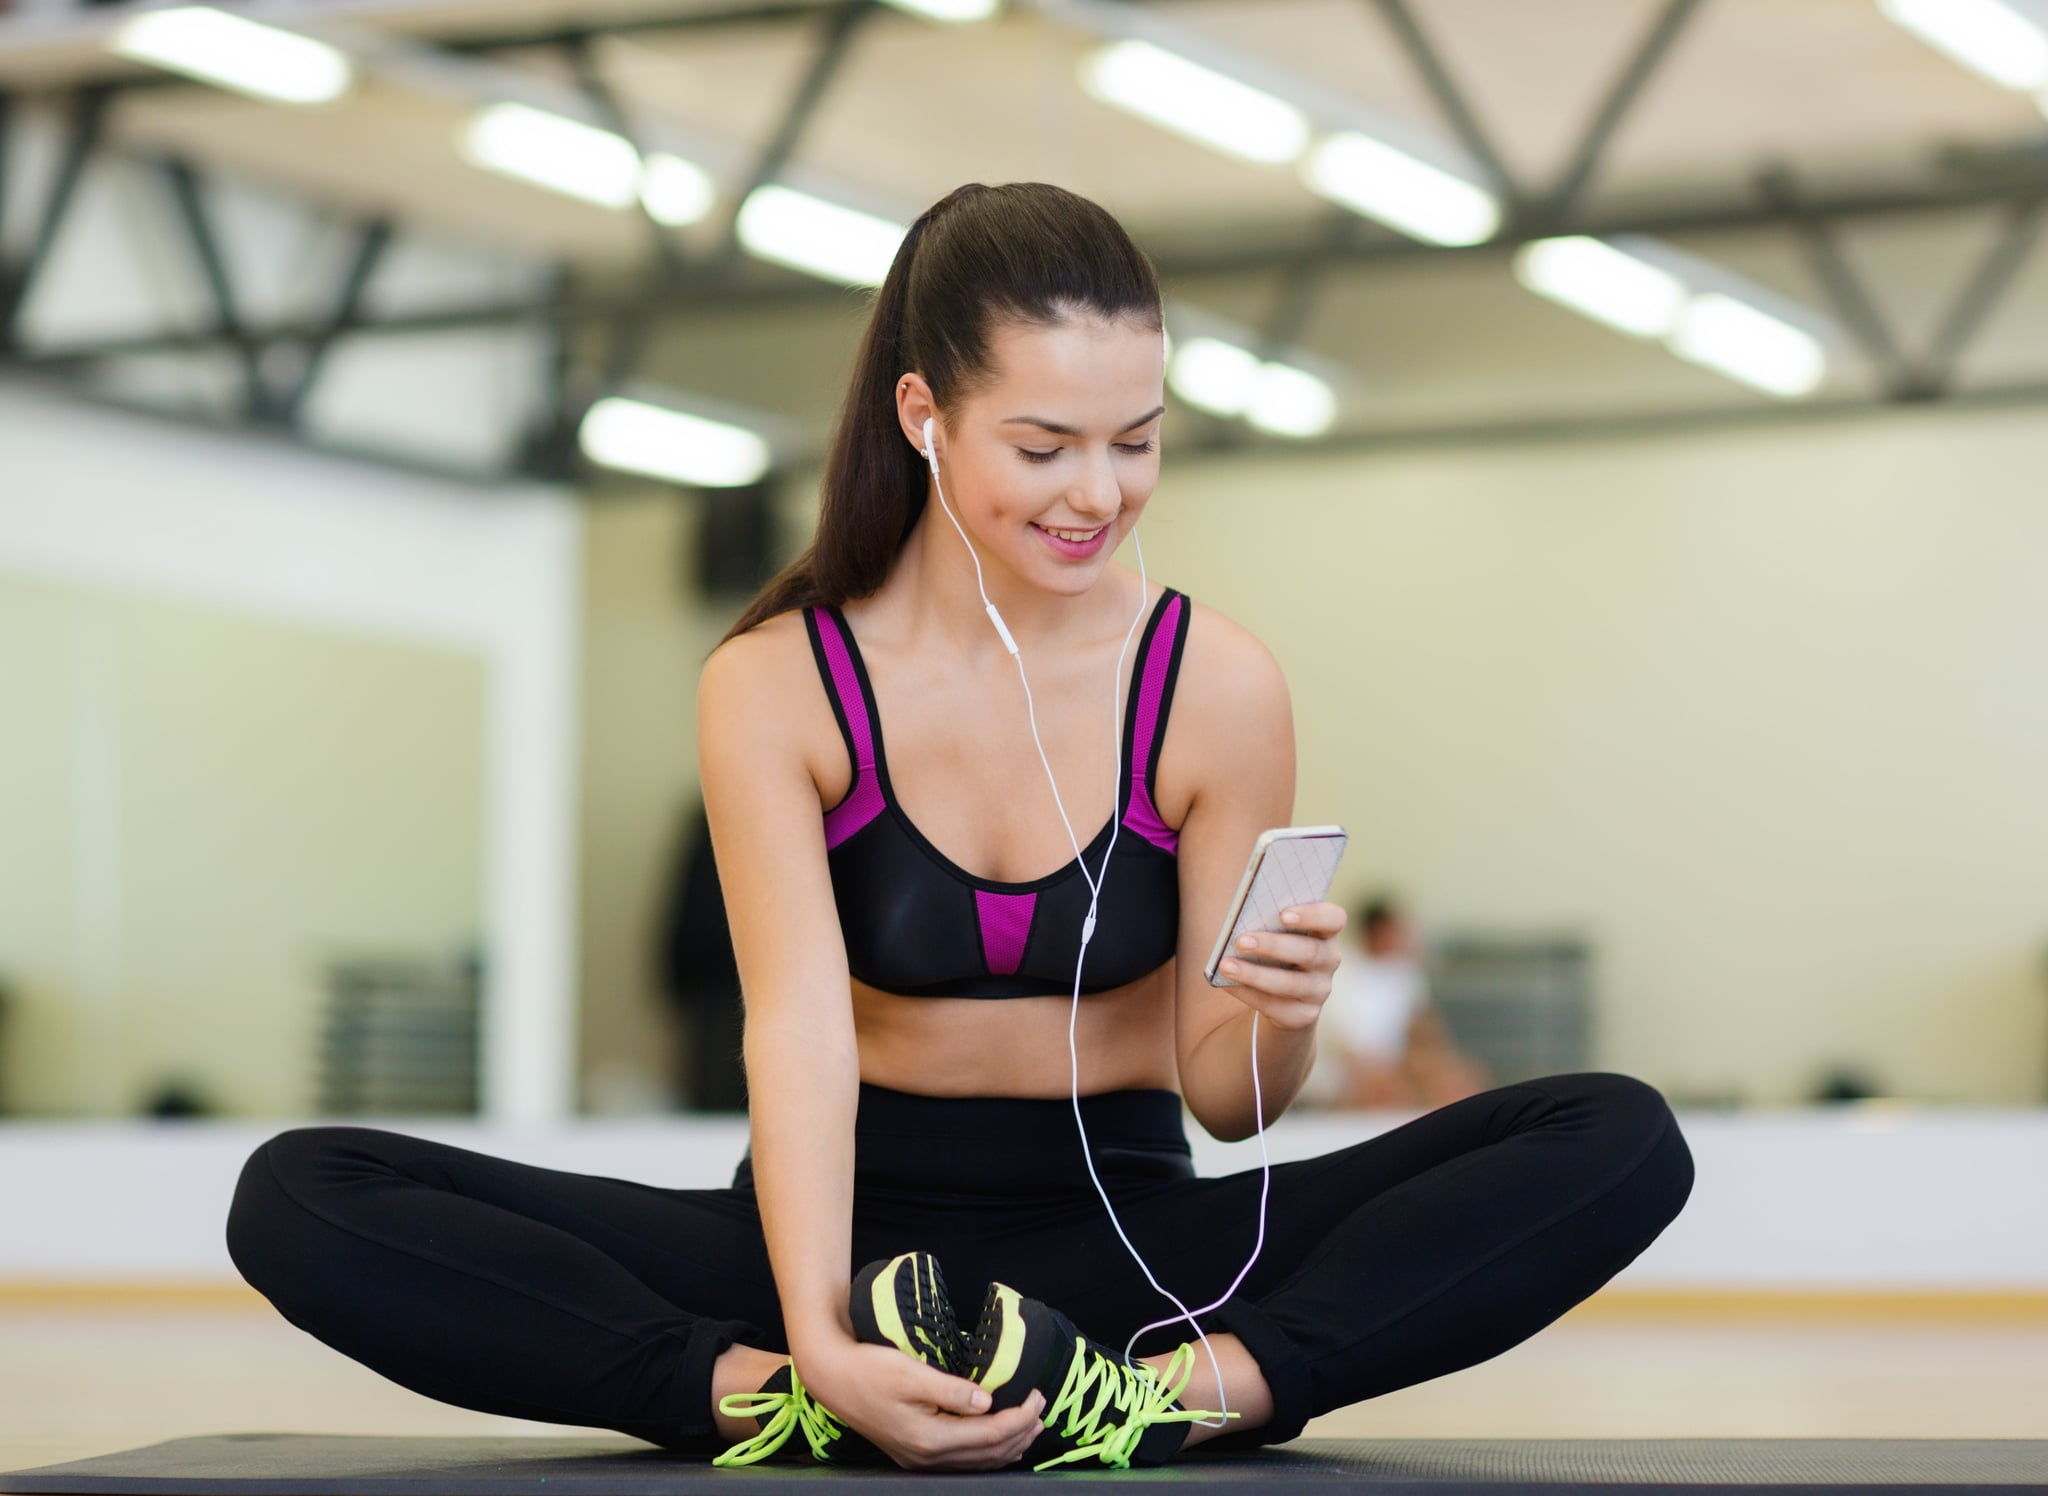 These Fitness Apps Will Make You Want to Go to the Gym This Weekend